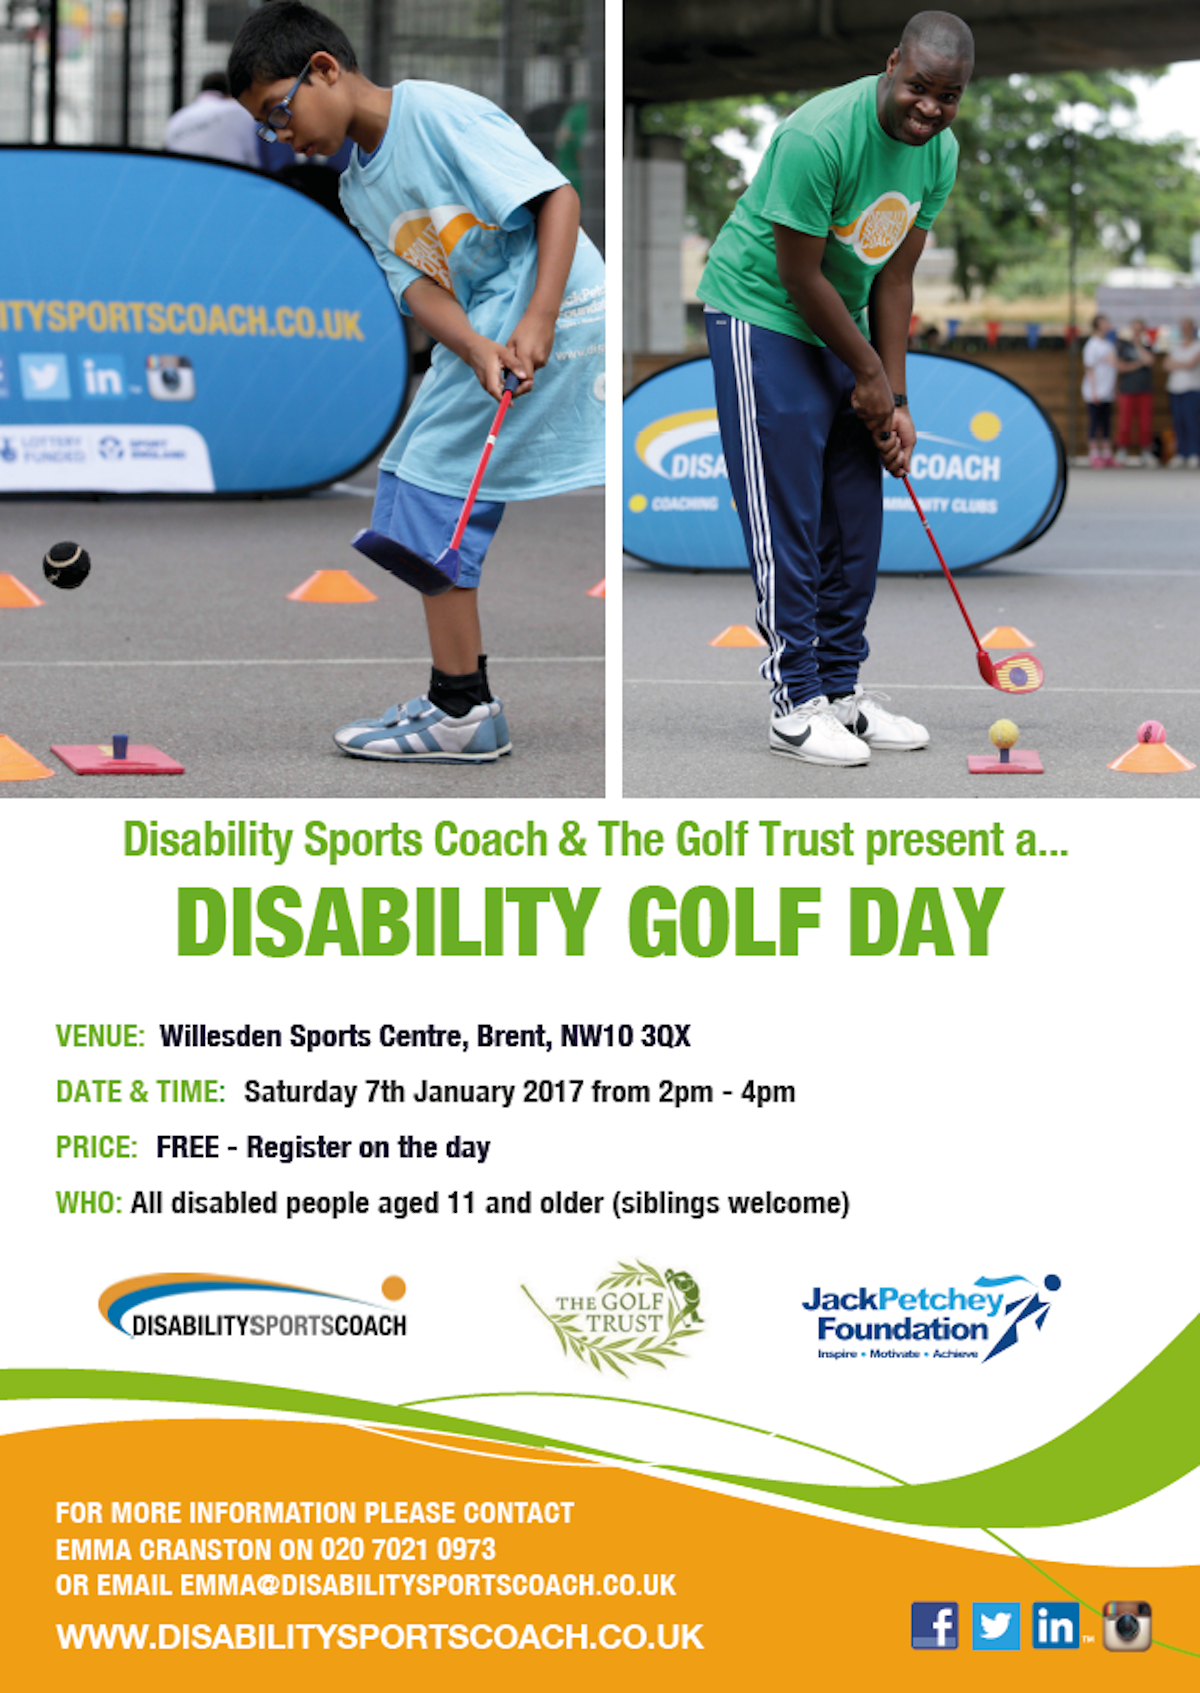 Disability Sports Coach & The Golf Trust Disability Golf Day